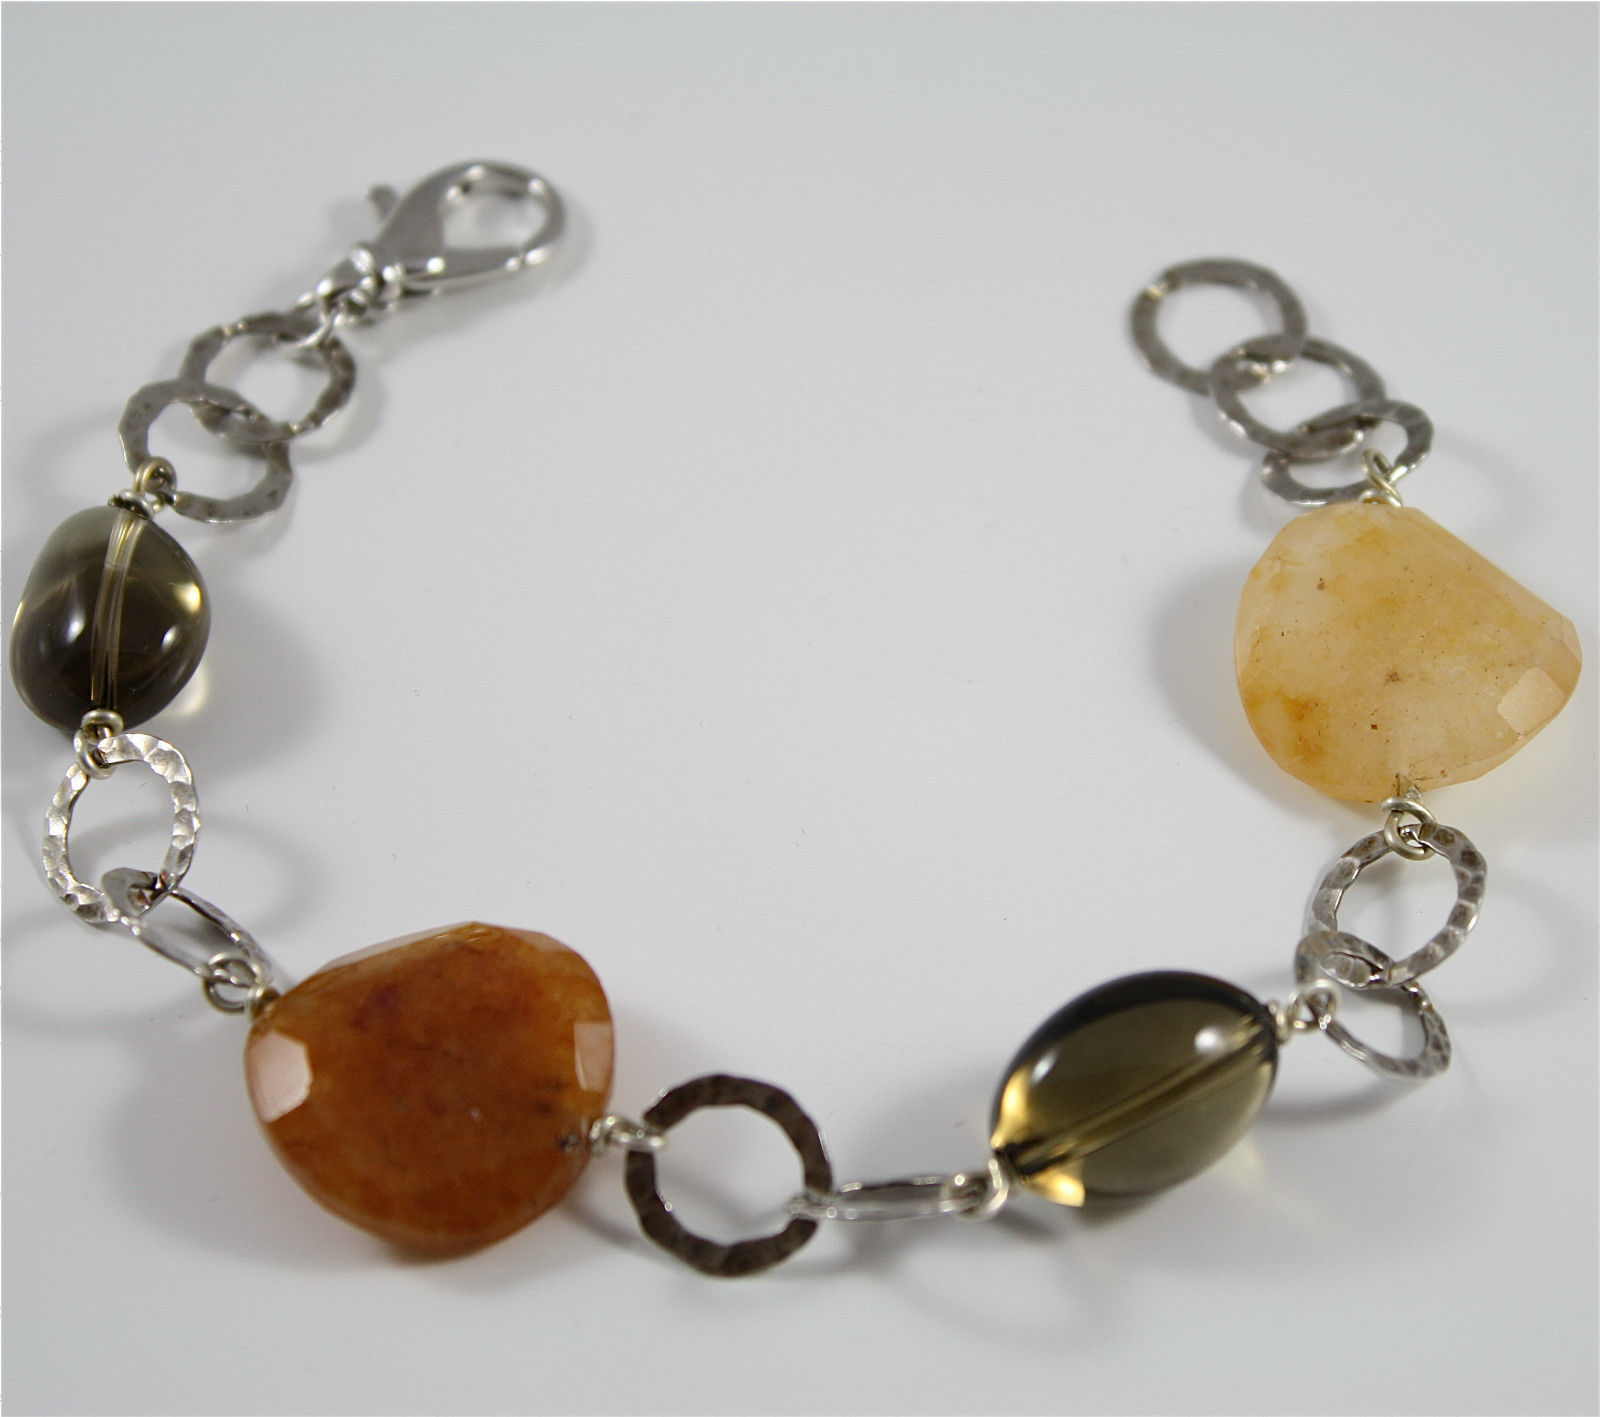 Bracelet in Sterling Silver 925 Rhodium with Quartz ospreys and Jade Brown disc